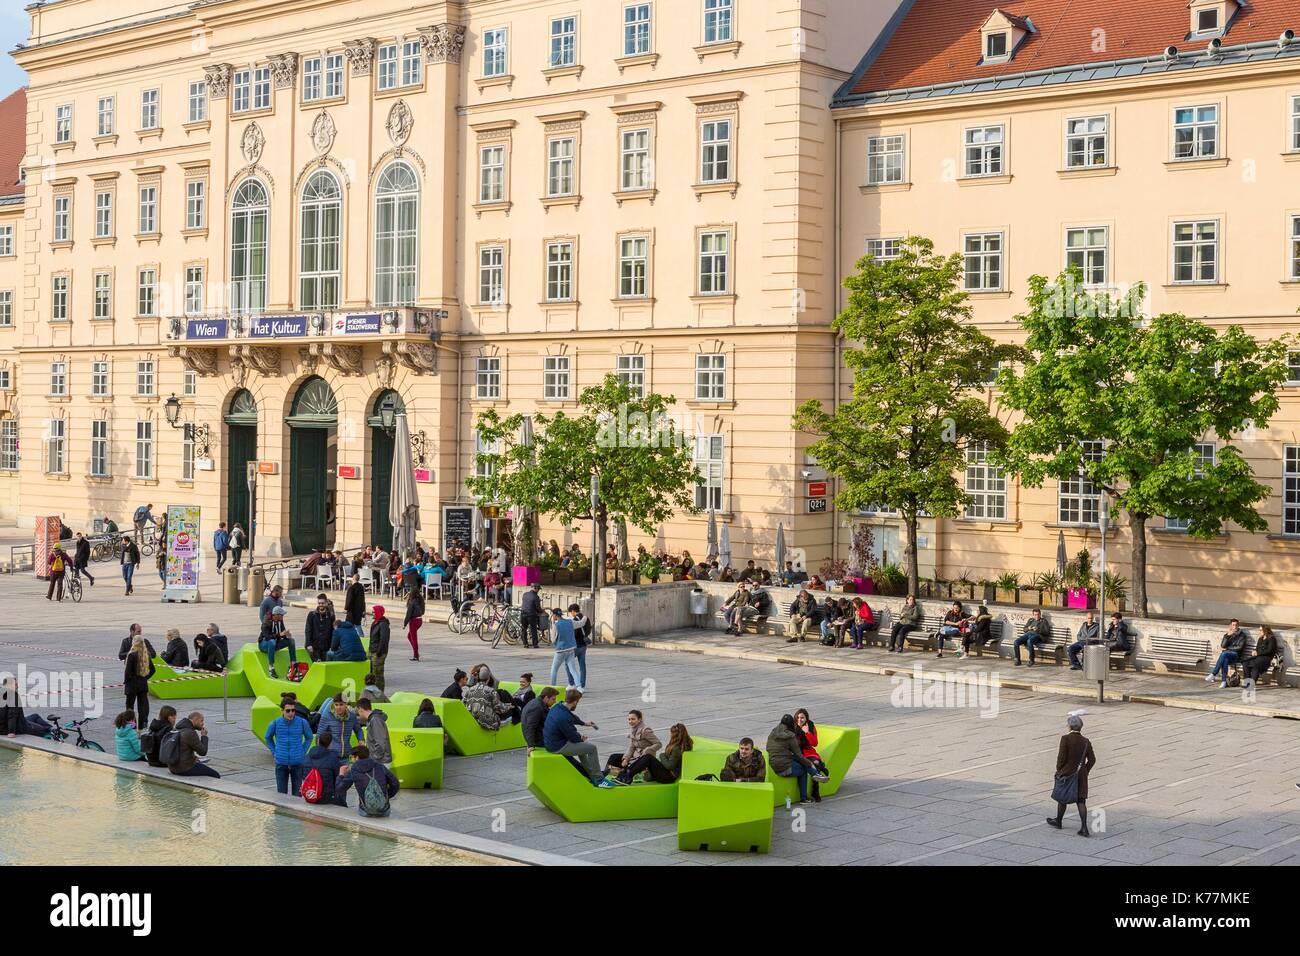 Austria, Vienna, MuseumsQuartier (MQ) located in the former stables of the Imperial Court opened in 2001 is a space Stock Photo